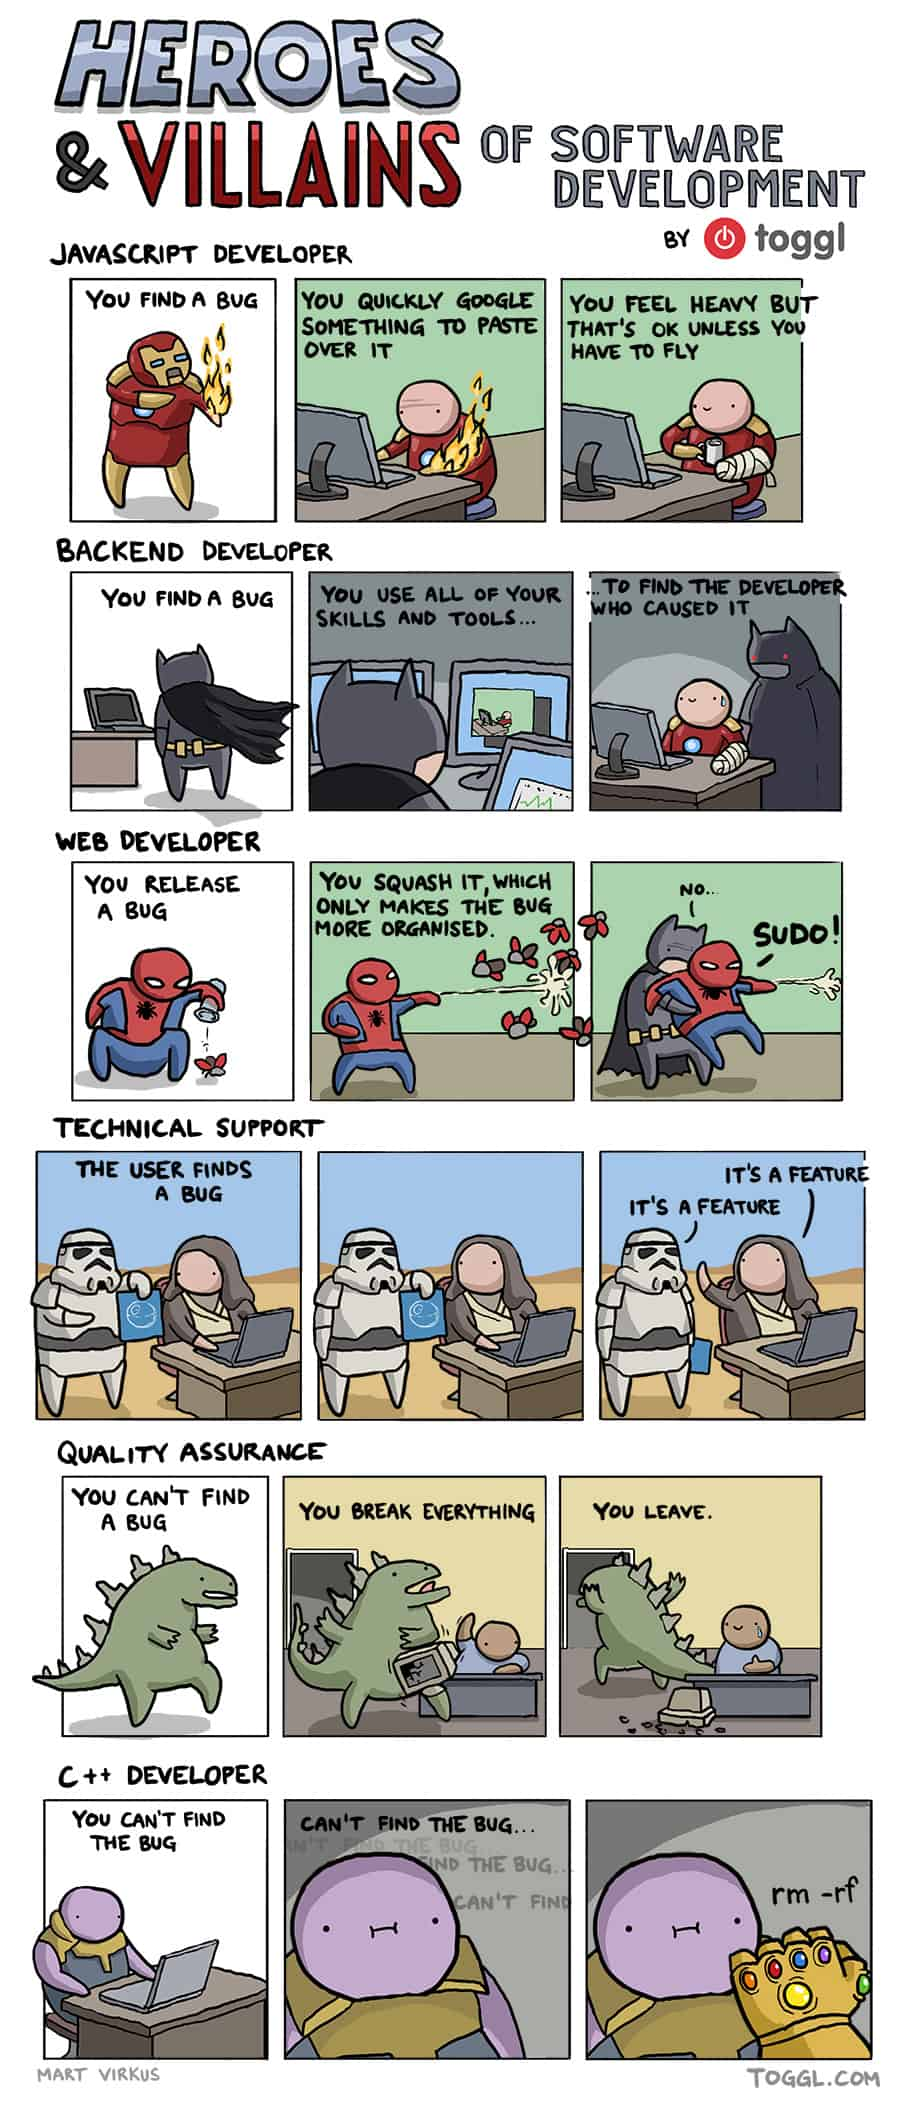 This is a comic that show the Heroes and Villains of Software Development.